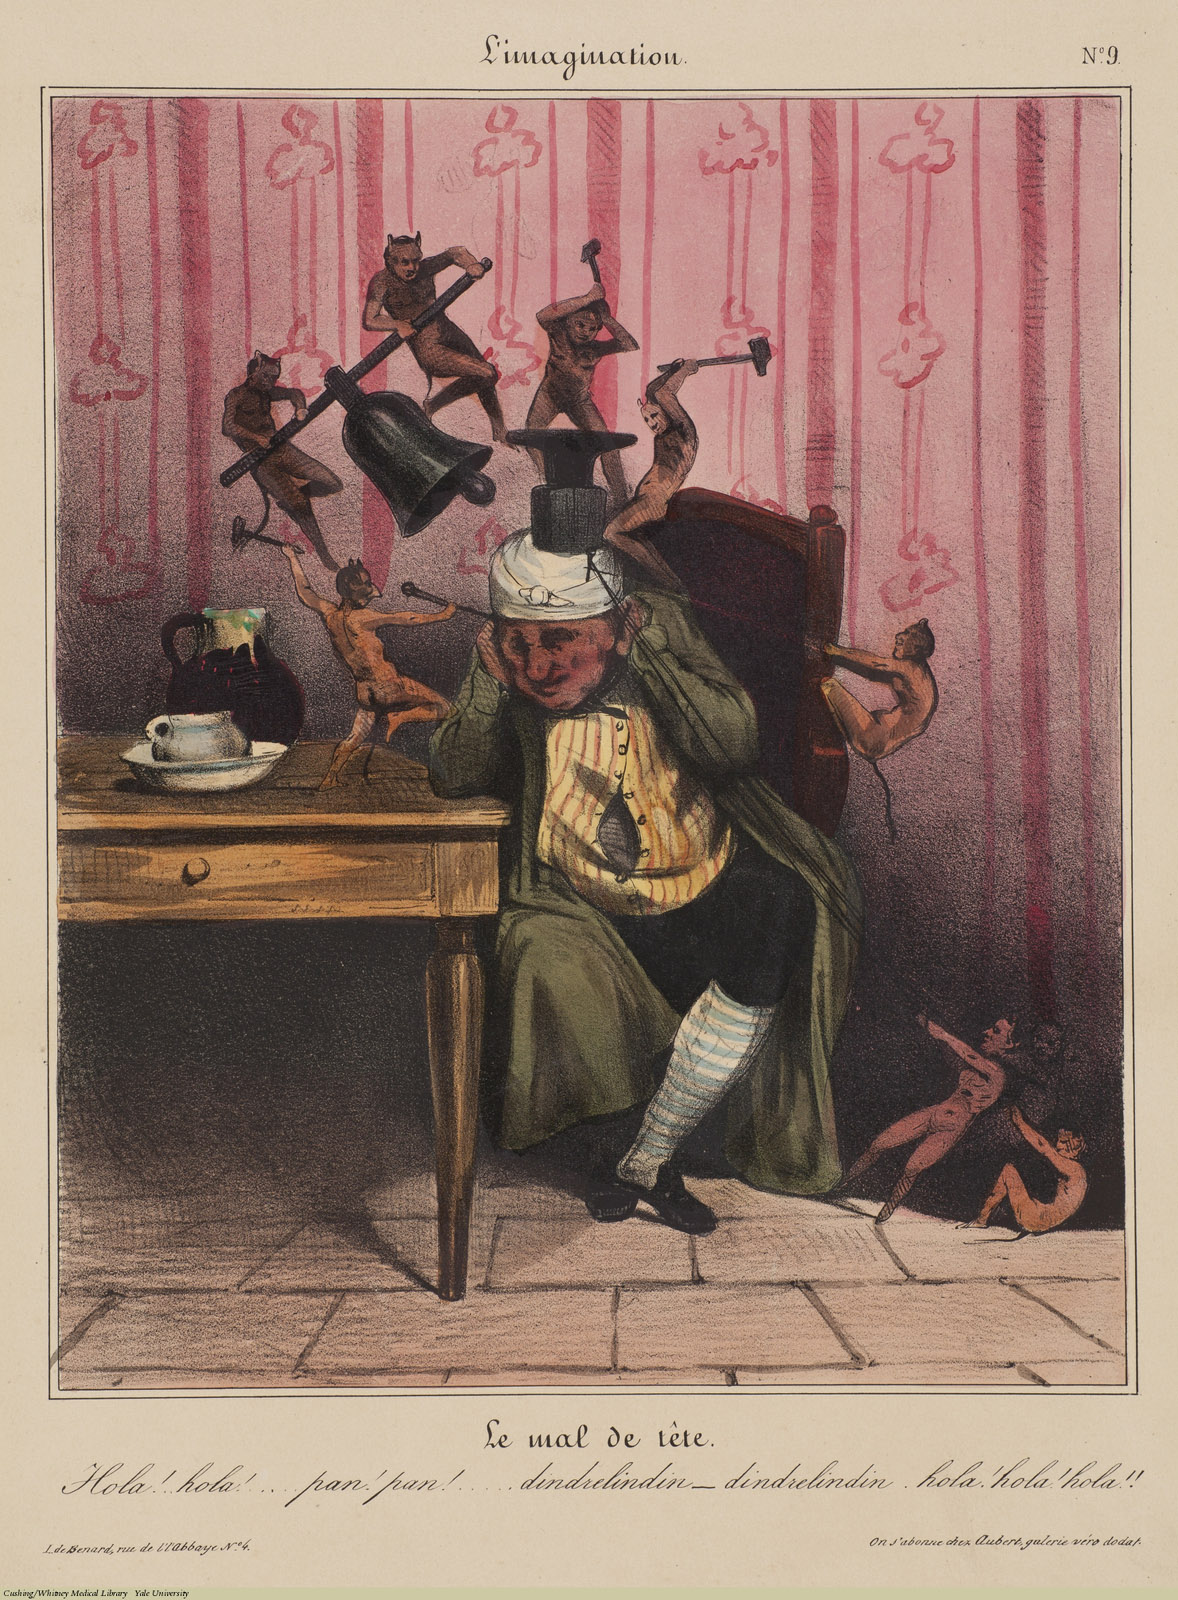 Le mal de tete. Charles Ramelet / Honore Daumier, Lithograph coloured. Subject: Headache, Depiction of Pain.